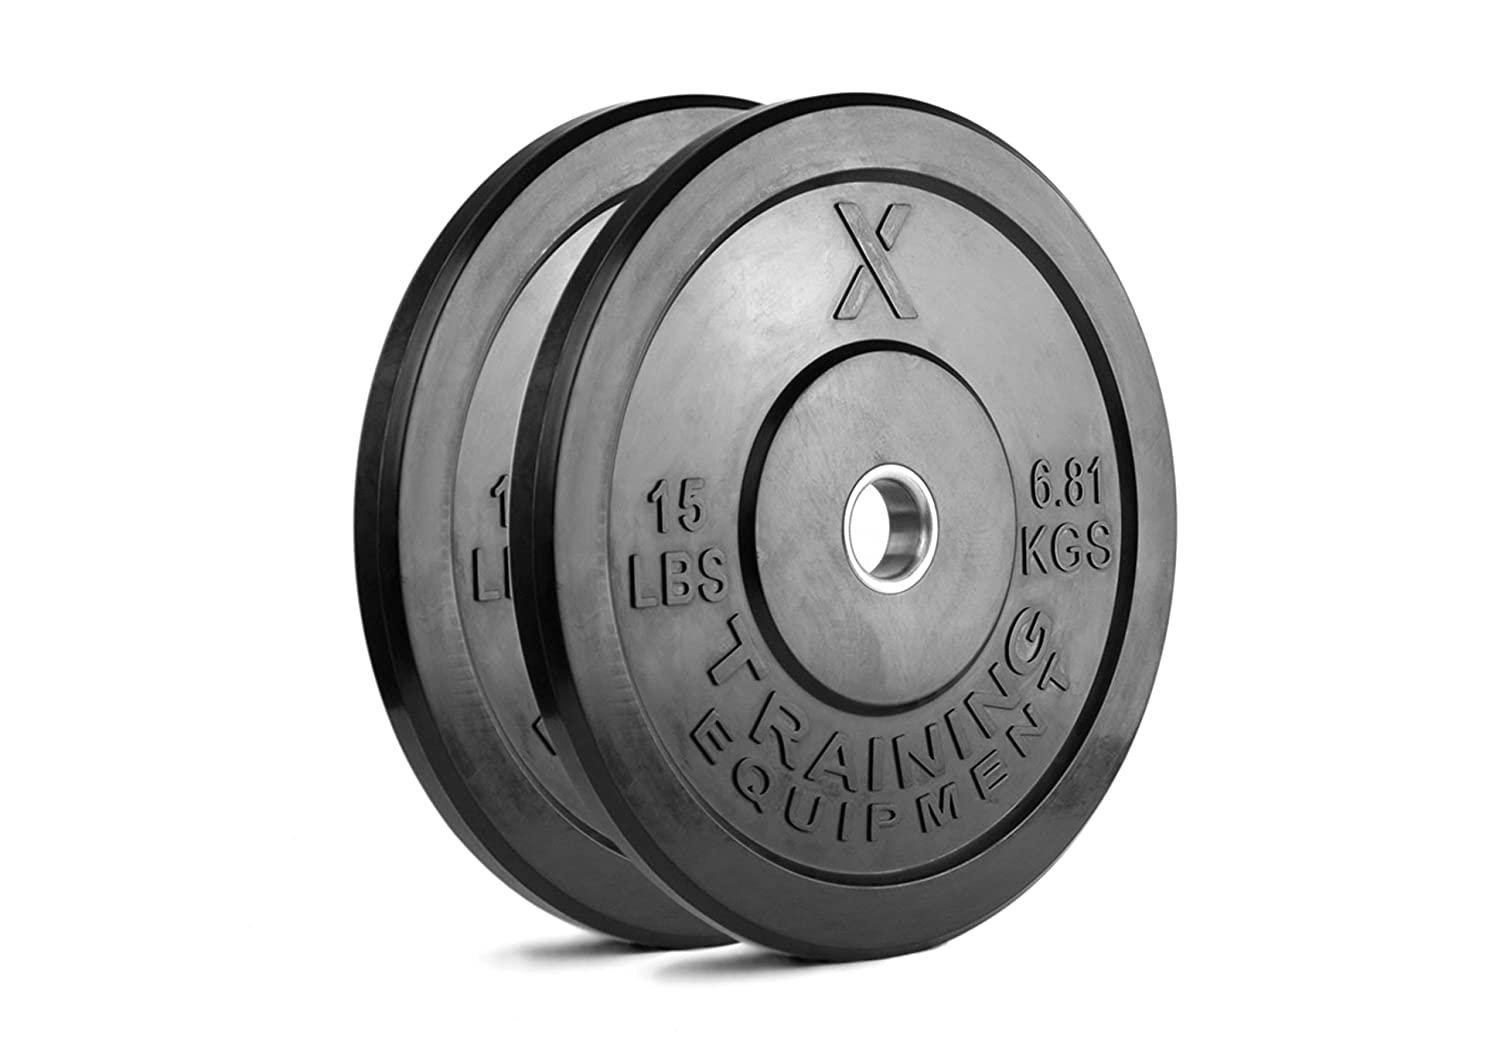 X Training Equipment Premium Black Bumper Plate Solid Rubber with Steel Insert – Great for Crossfit Workouts